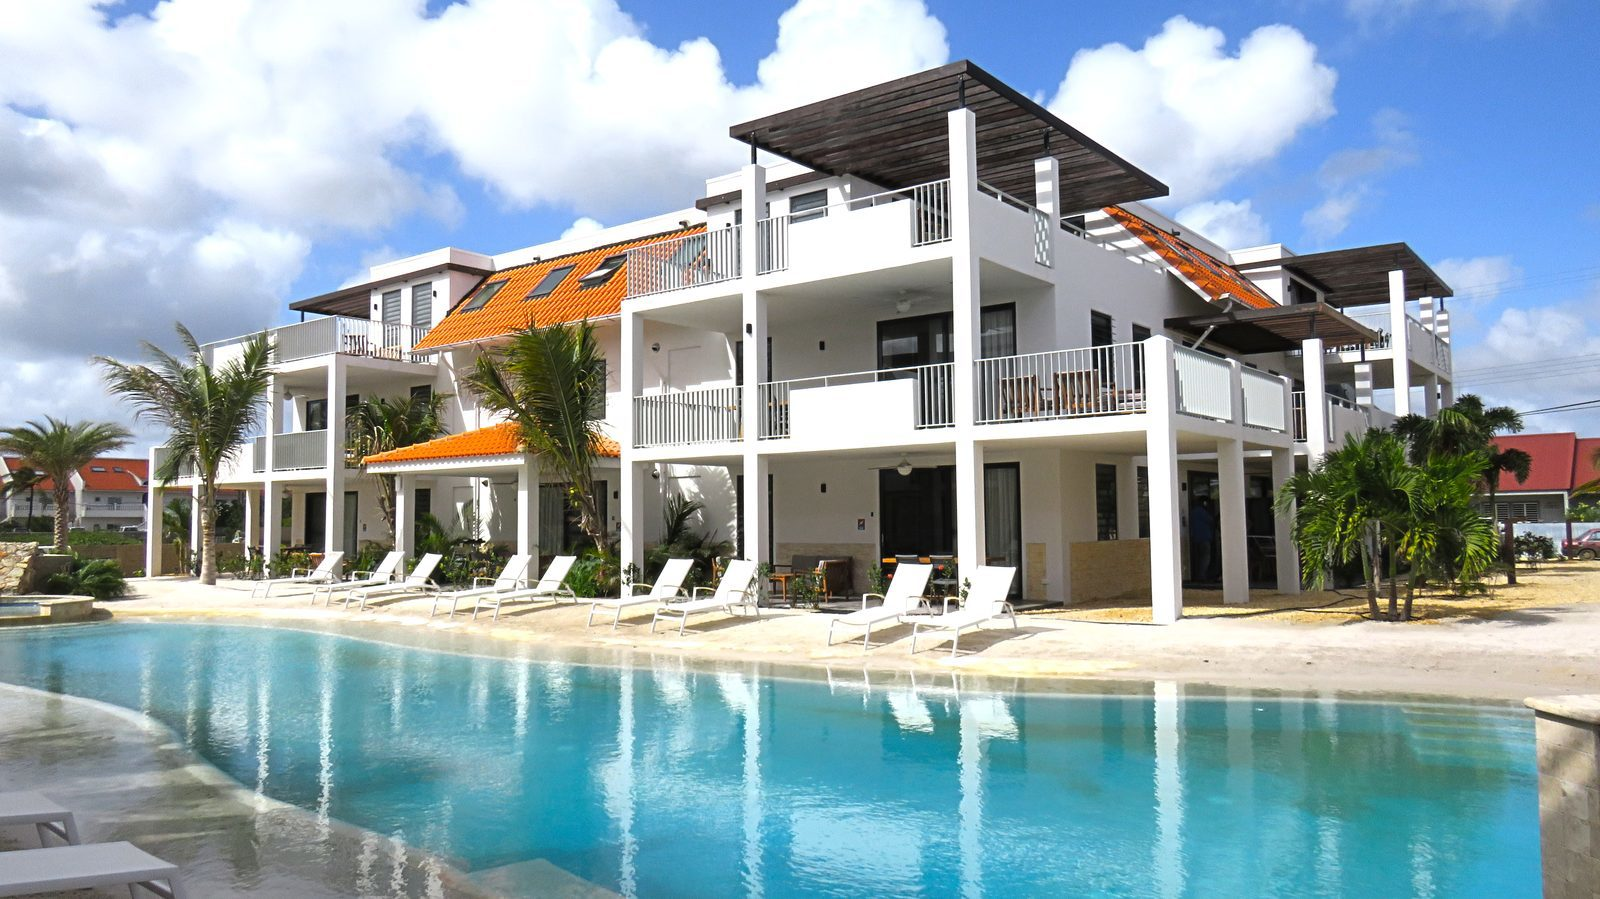 Resort Bonaire is one of the best places to stay on Bonaire. You can relax and enjoy the nice vibes on this island.